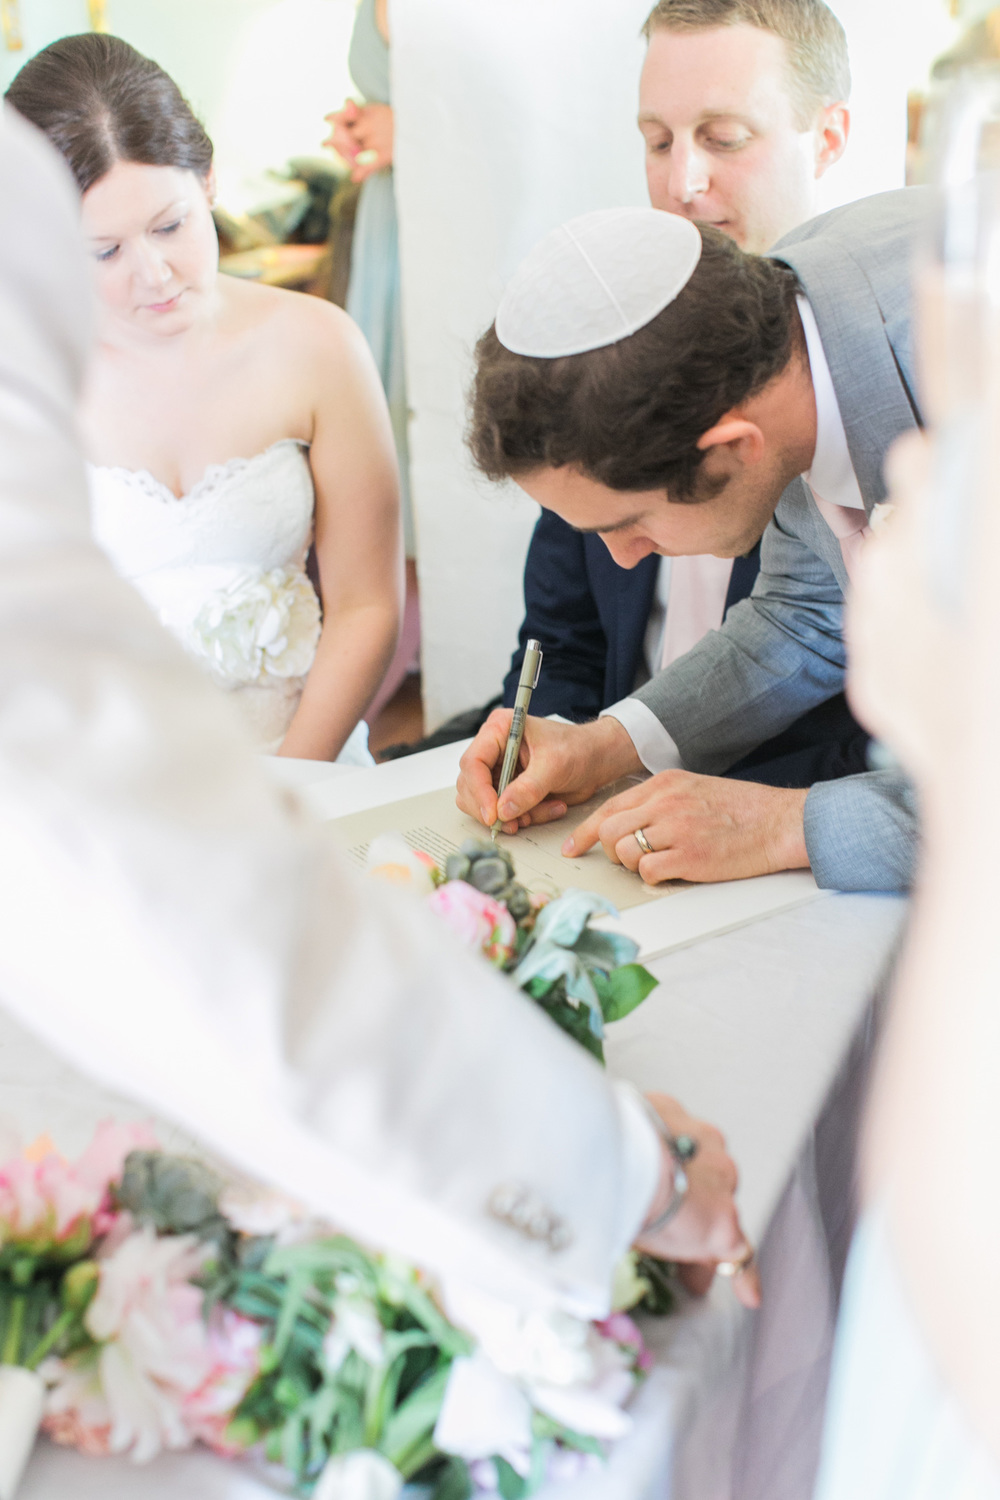 050-jewish-wedding-photography-northern-virginia.jpg